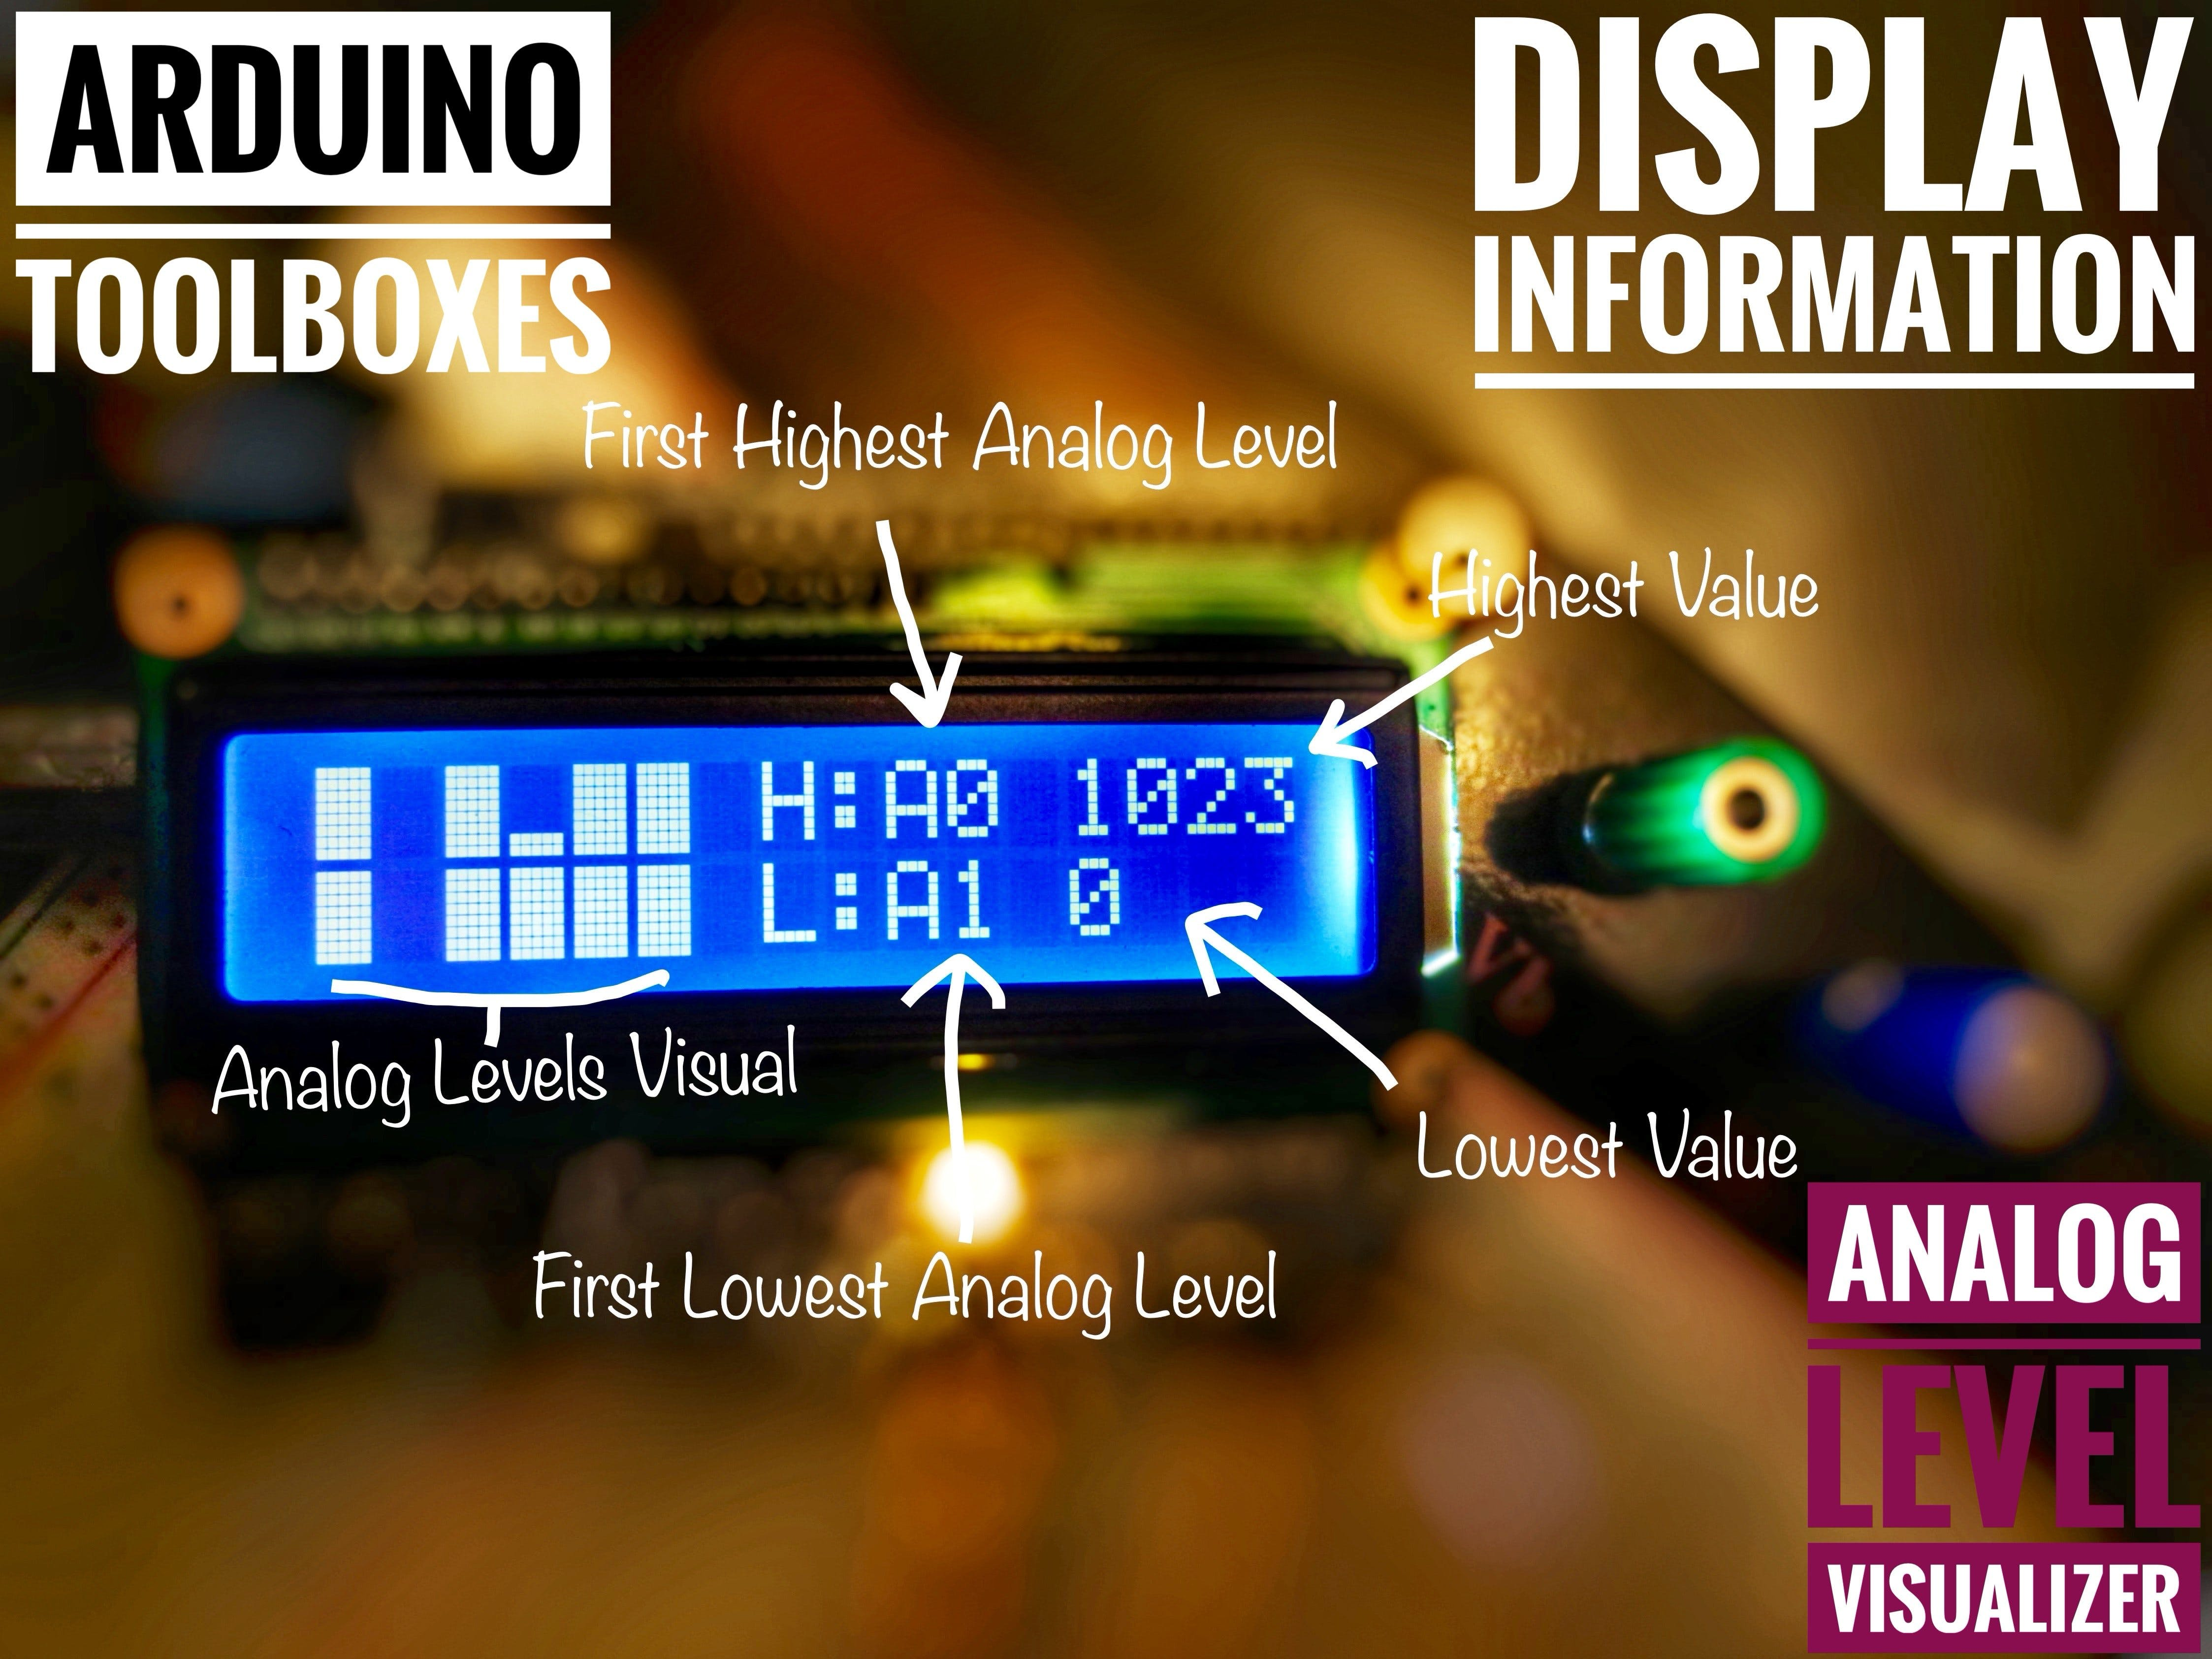 Arduino Toolboxes : Analog Level Visualizer